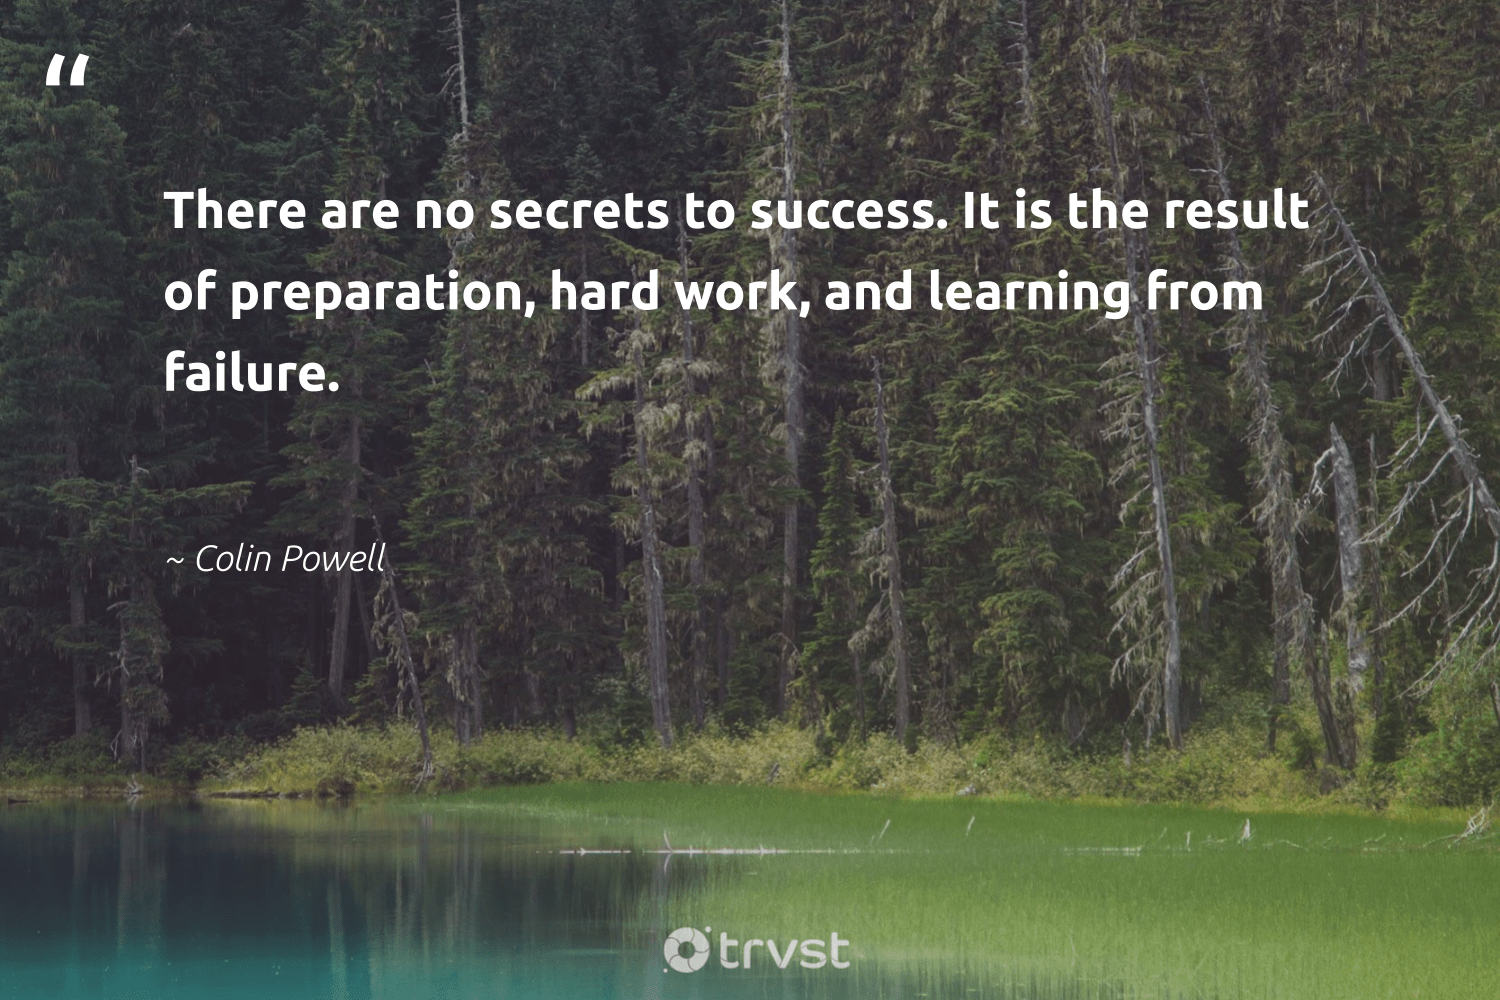 """""""There are no secrets to success. It is the result of preparation, hard work, and learning from failure.""""  - Colin Powell #trvst #quotes #productivity #success #mostwontiwill #begreat #futureofwork #socialchange #focus #softskills #nevergiveup #takeaction"""